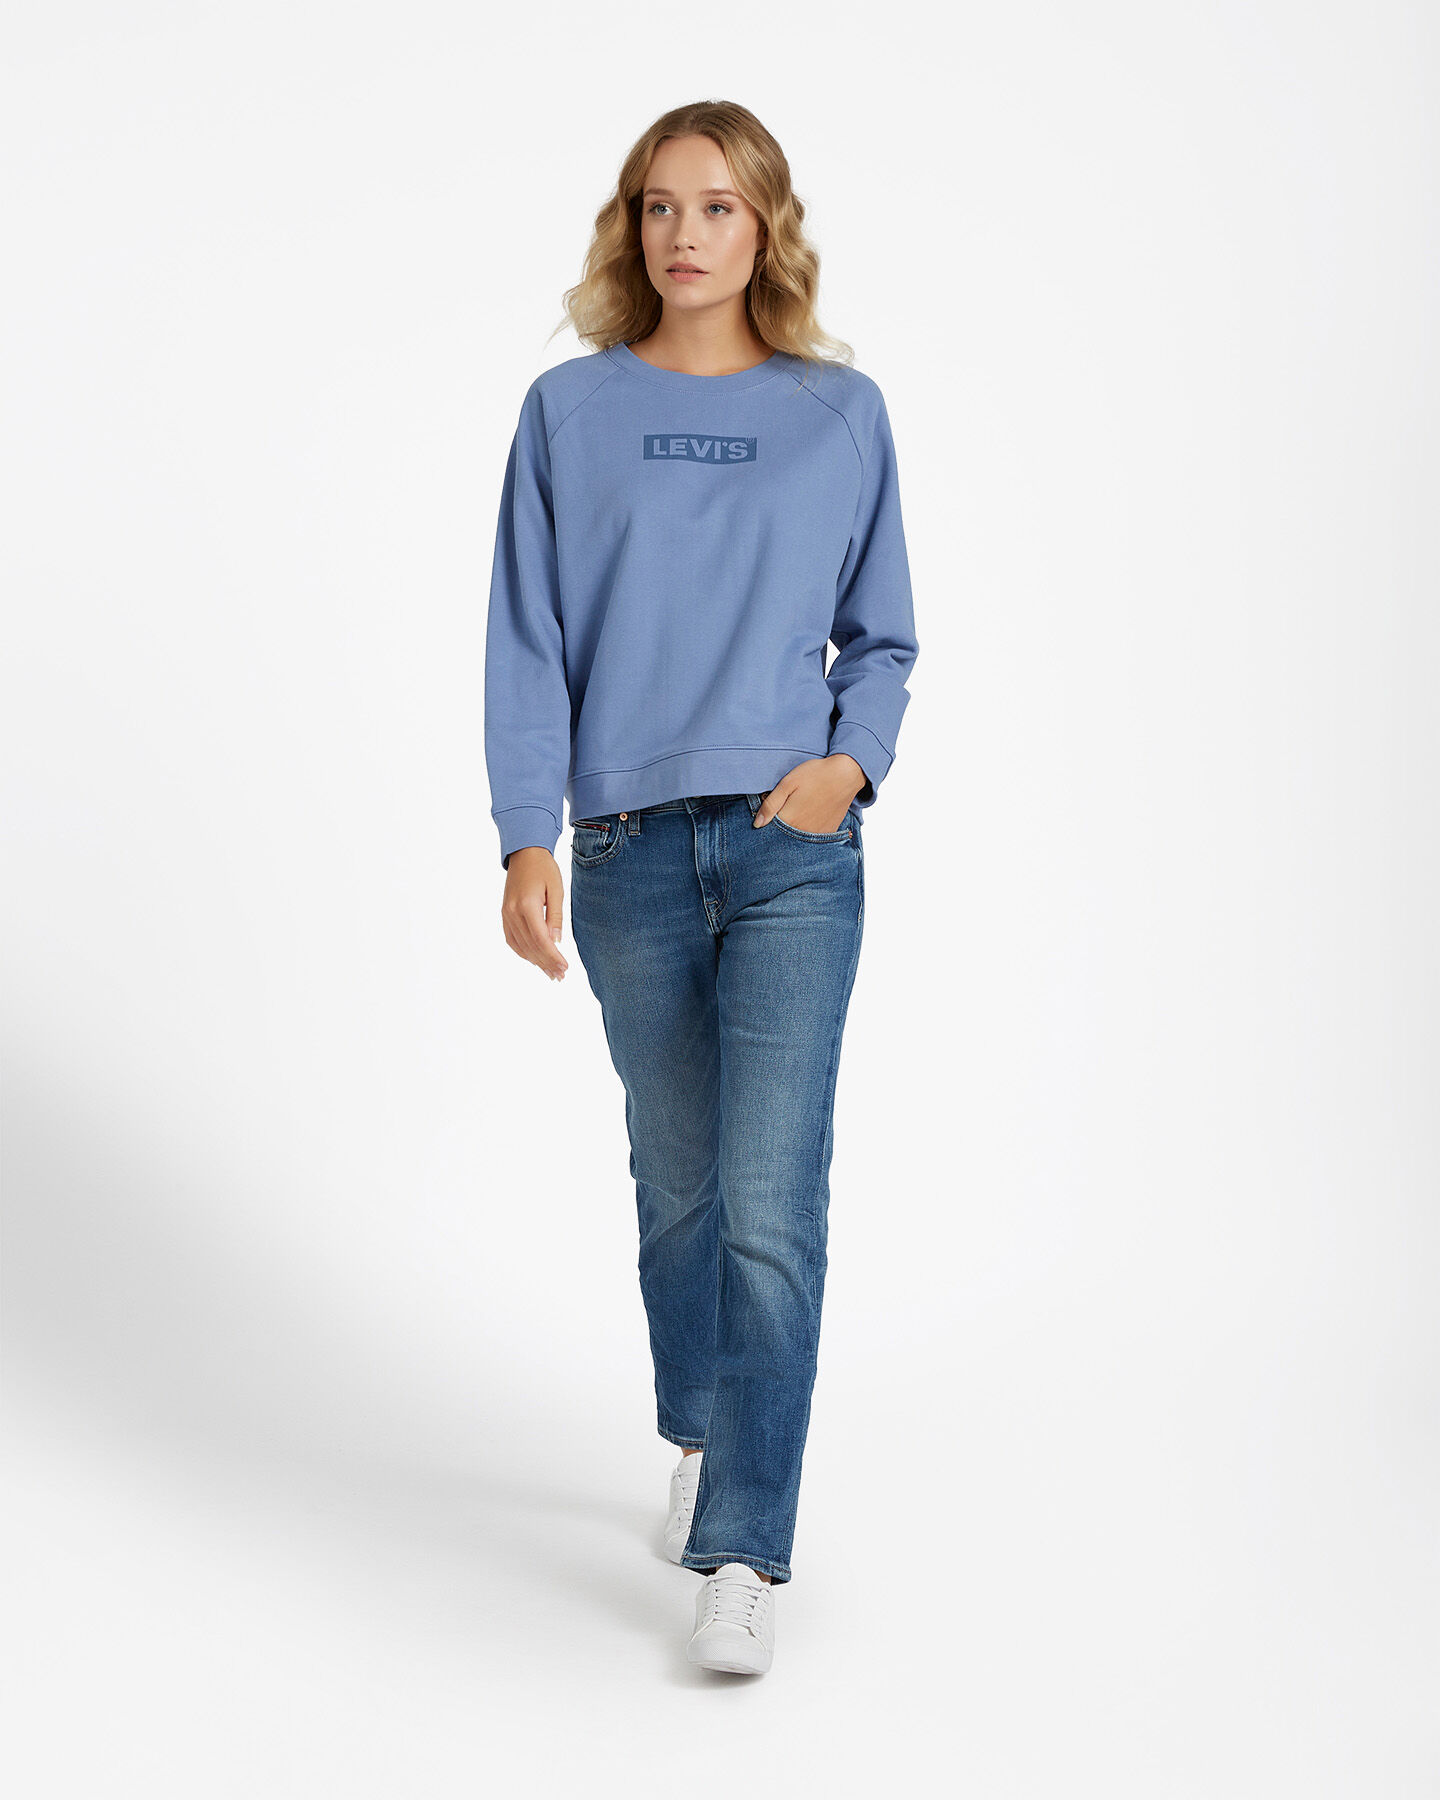 Felpa LEVI'S RELAXED GRAPHIC BOXTAB W S4083510 scatto 3